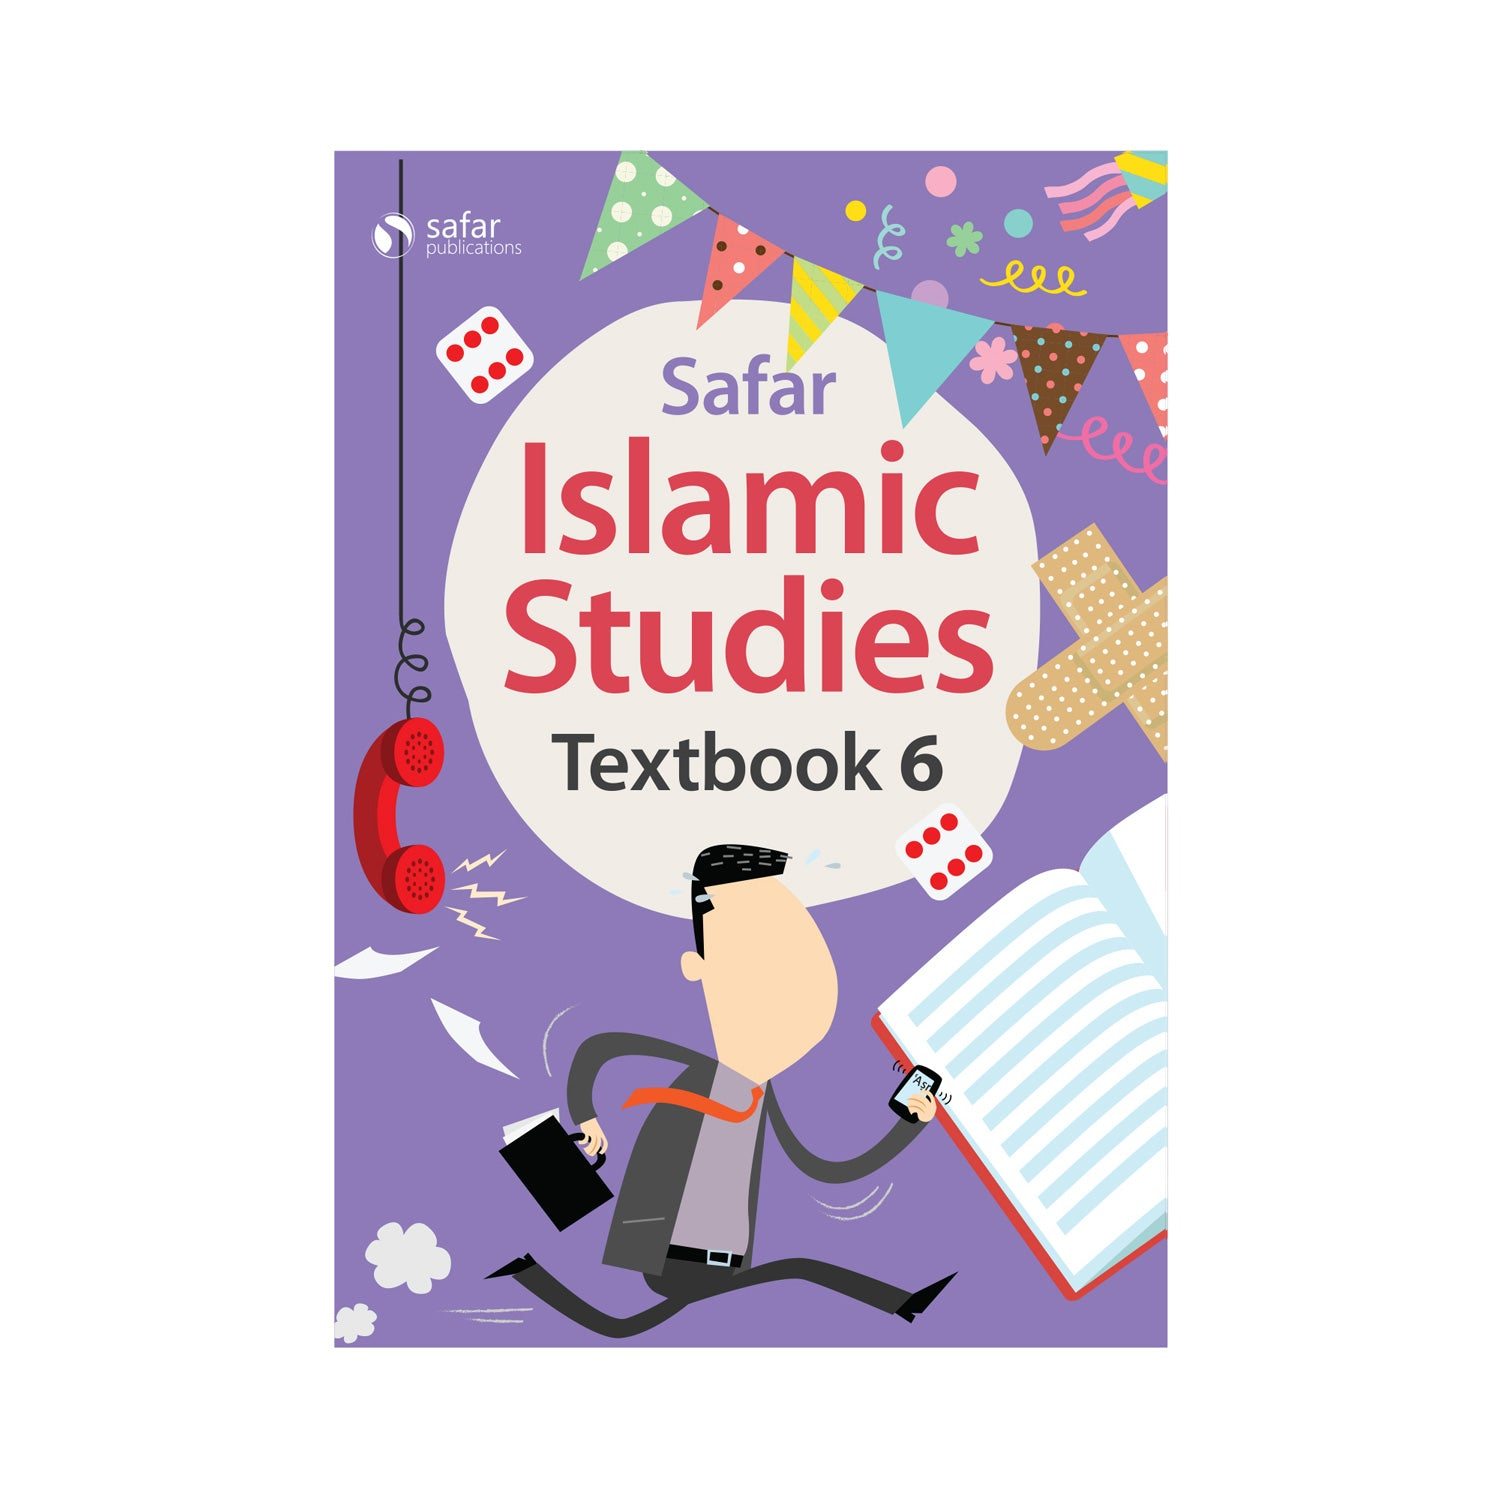 Islamic Studies: Textbook 6 – Learn about Islam Series by Safar